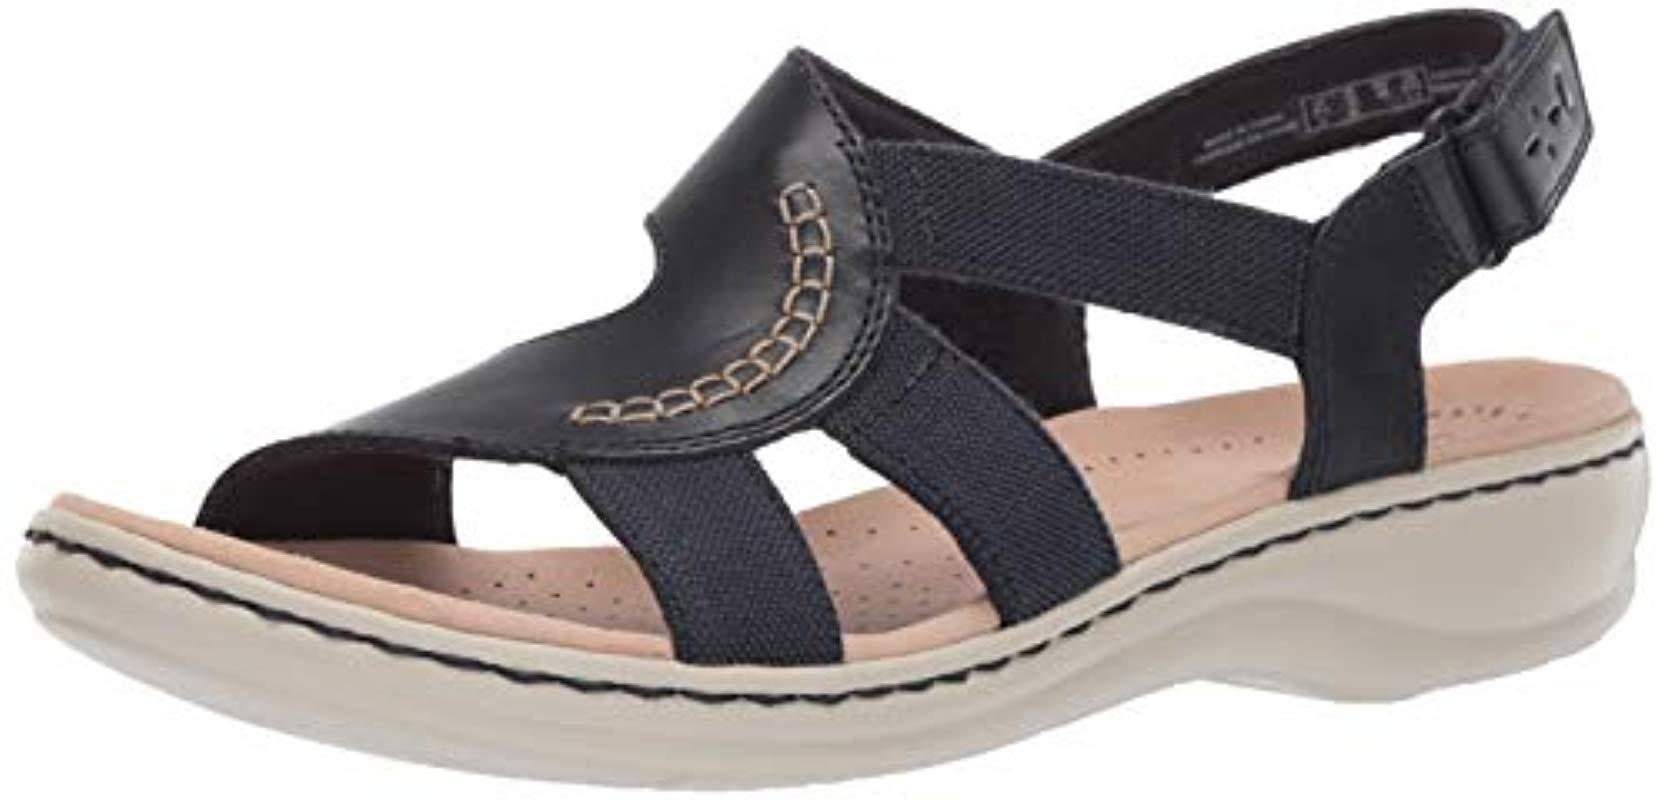 65439e7102b Lyst - Clarks Leisa Joy Sandal in Blue - Save 13%